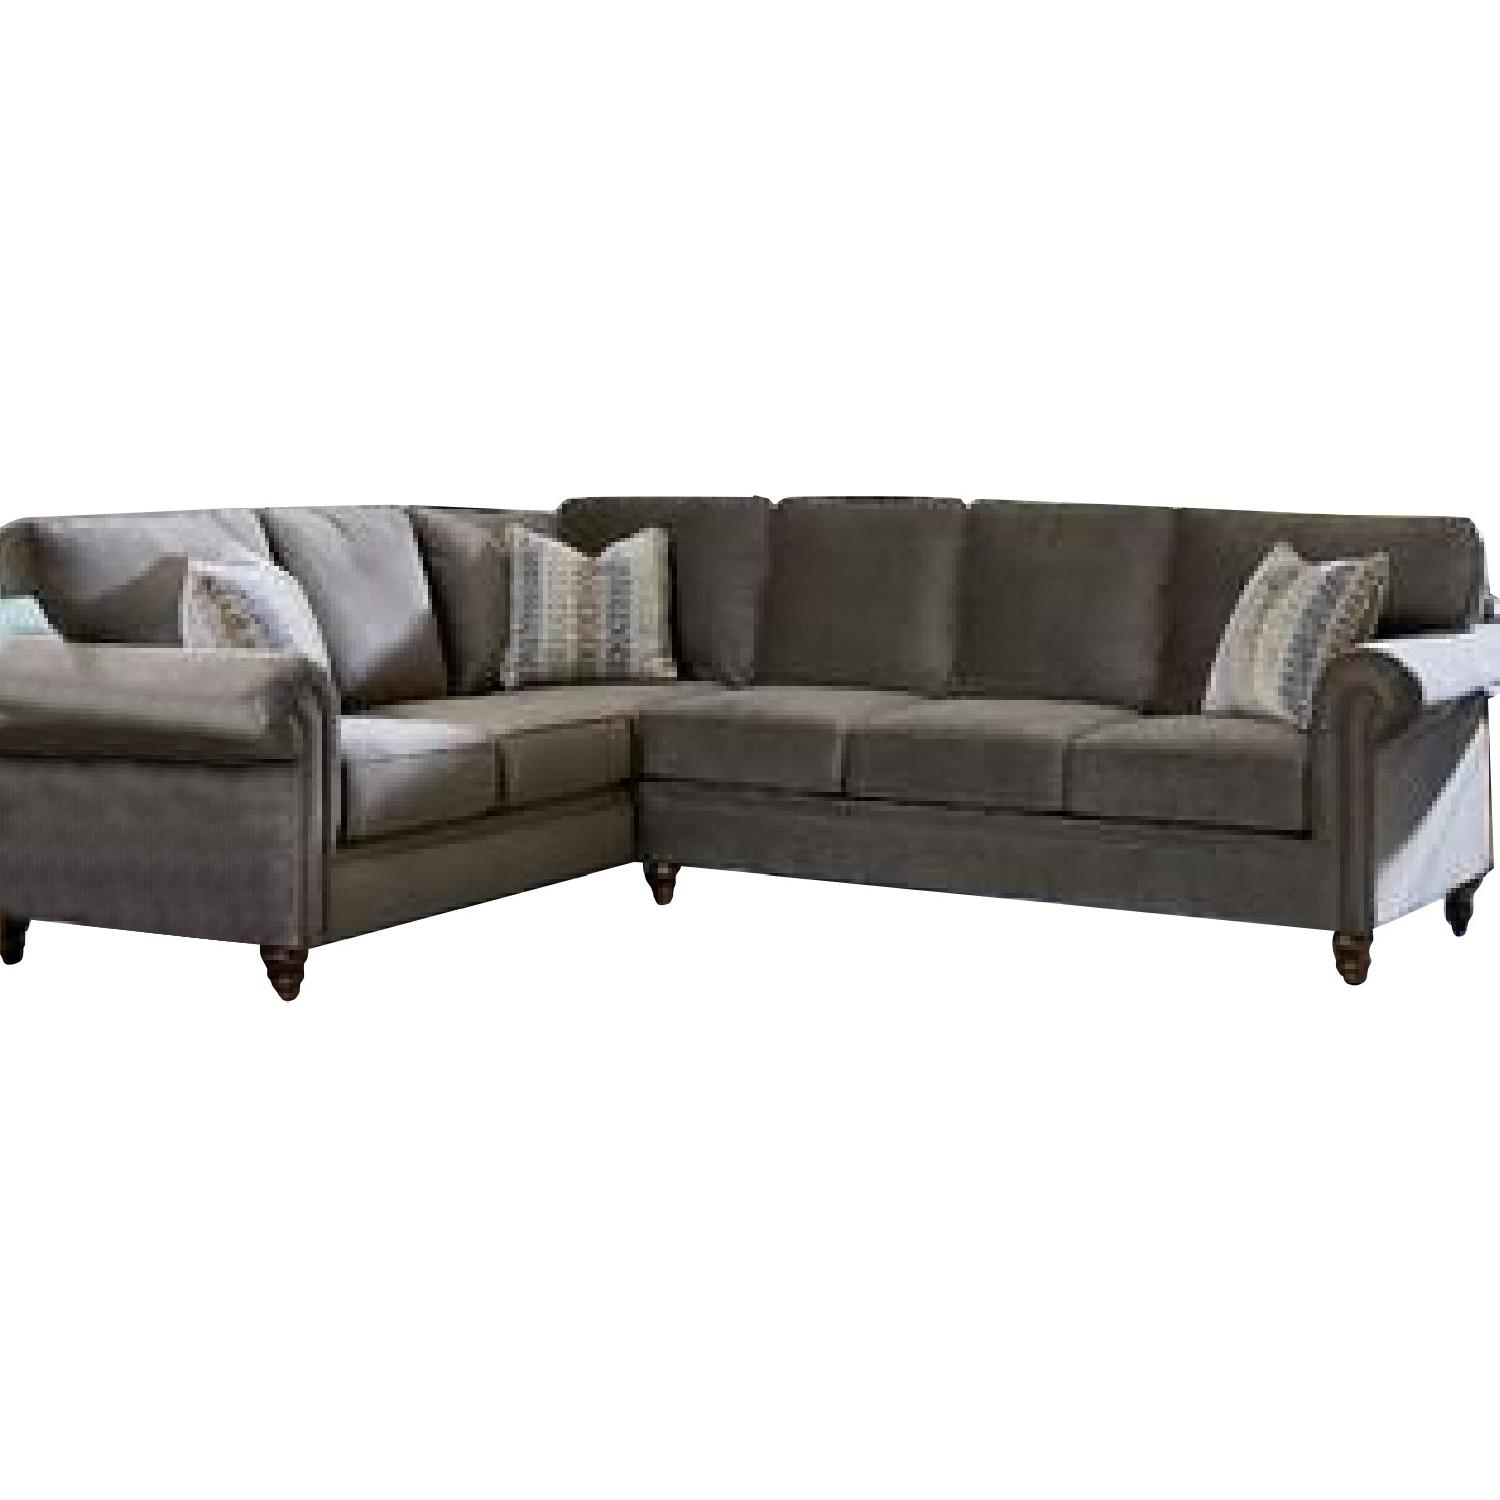 Crate & Barrel 3-Piece Sectional Sofa